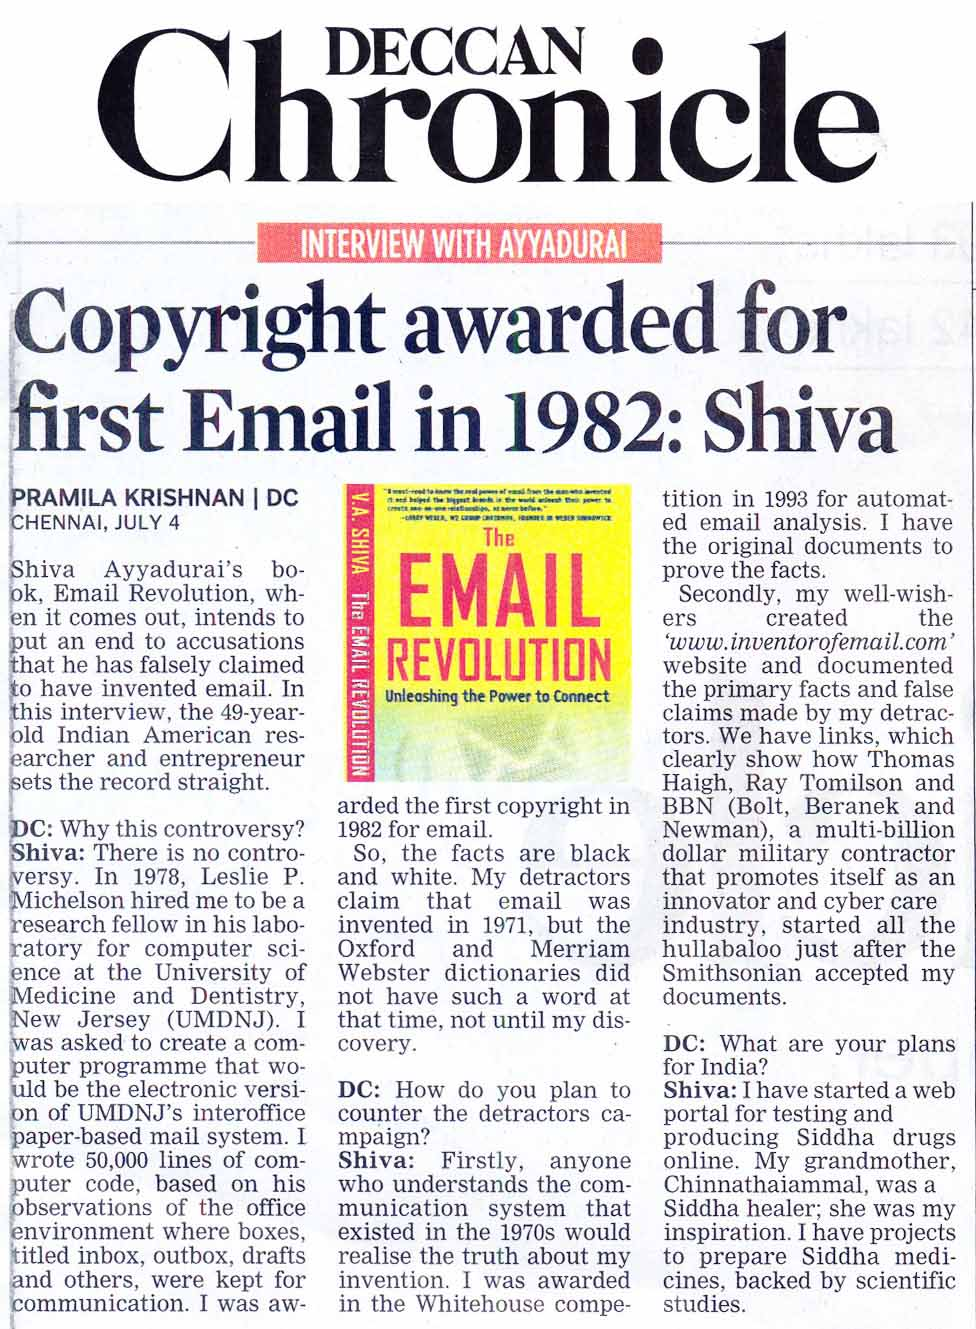 Copyright Awarded For First Email In 1982